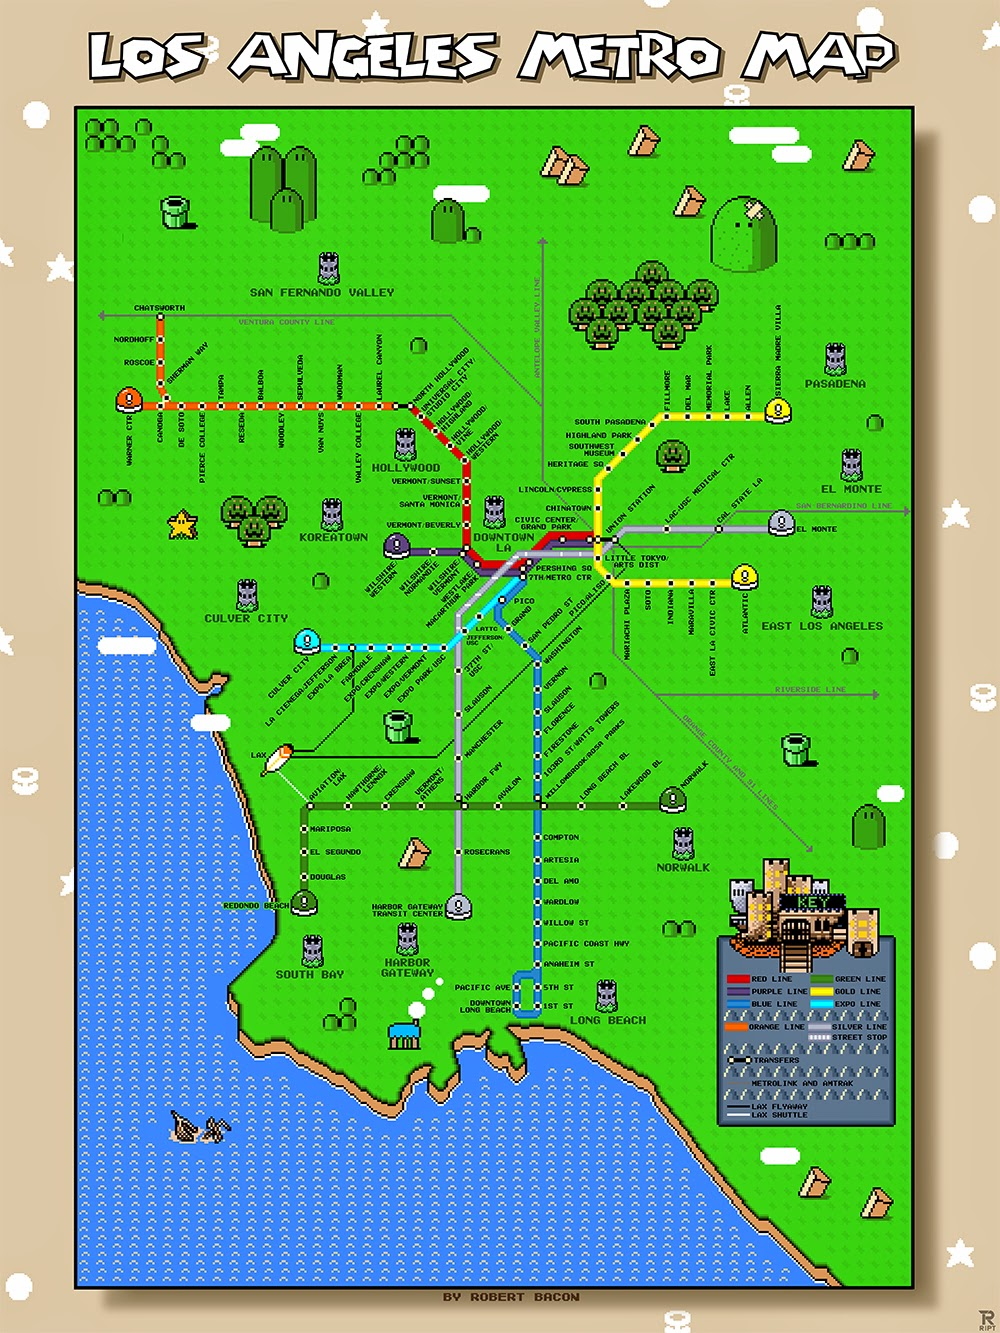 Things to do in los angeles super mario world los angeles metro map an artist going by the name robert bacon has created a map of the metro line of la in the theme of super mario this combines two of my favorite things gumiabroncs Images